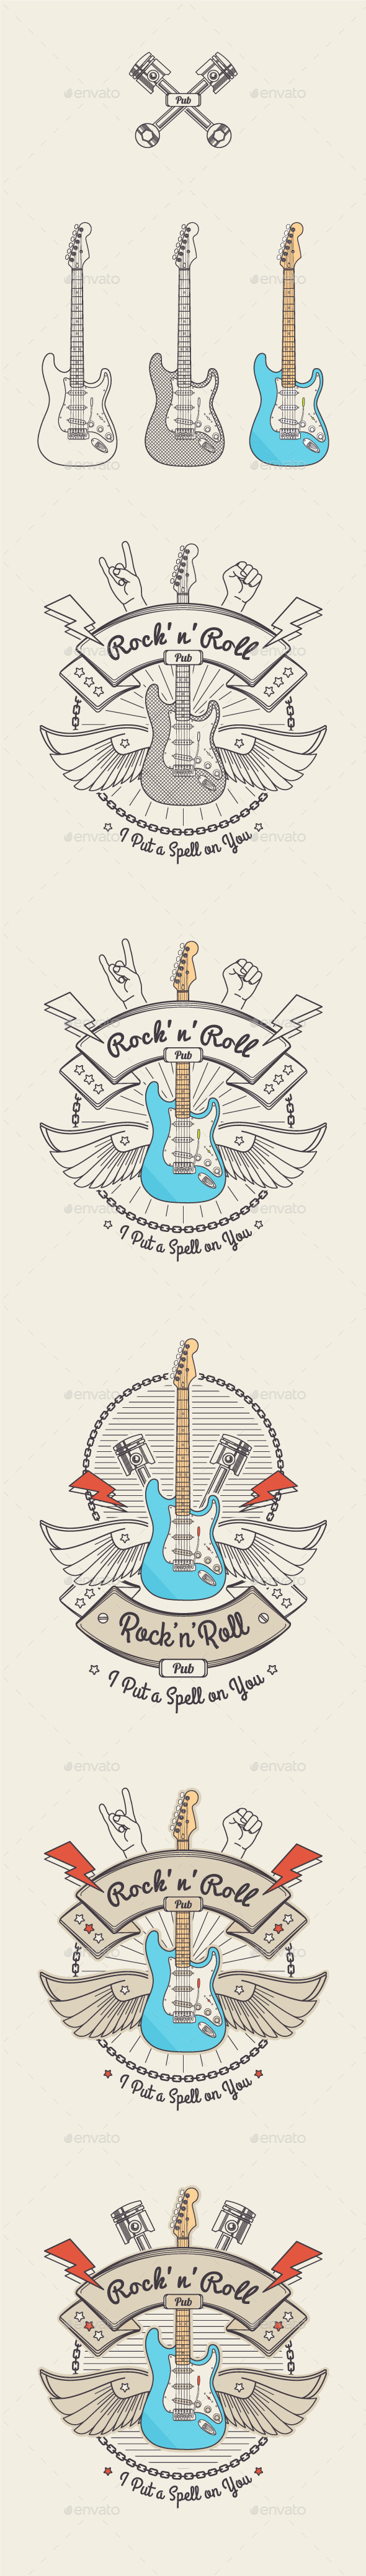 Trendy Retro Vintage Insignias with Guitar. - Tattoos Vectors